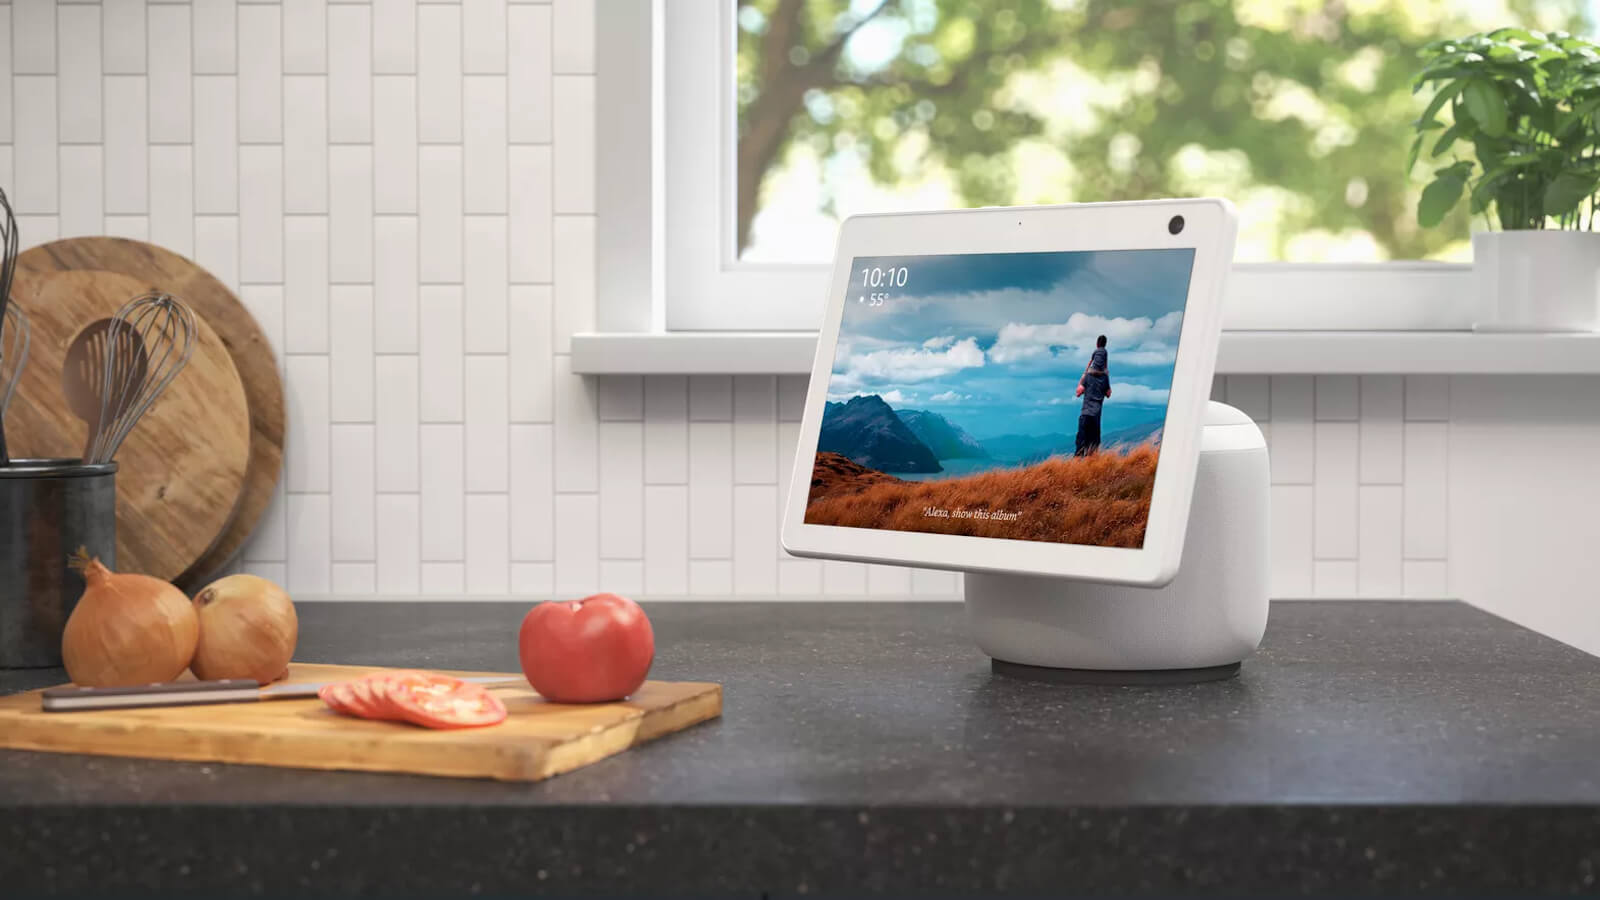 Amazon Echo Show 10 smart speaker